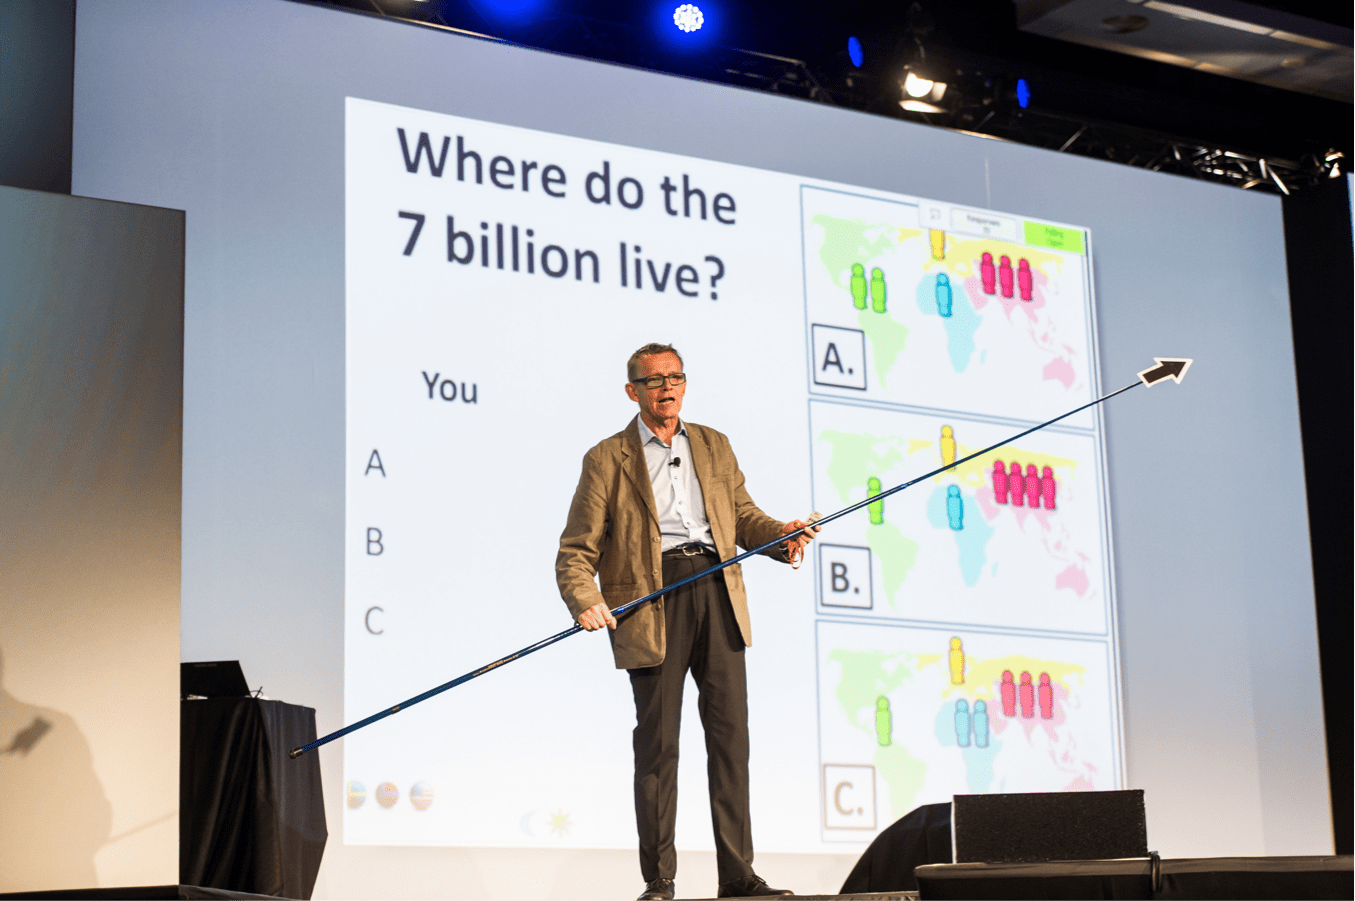 Hans Rosling: Marketing science with edutainment